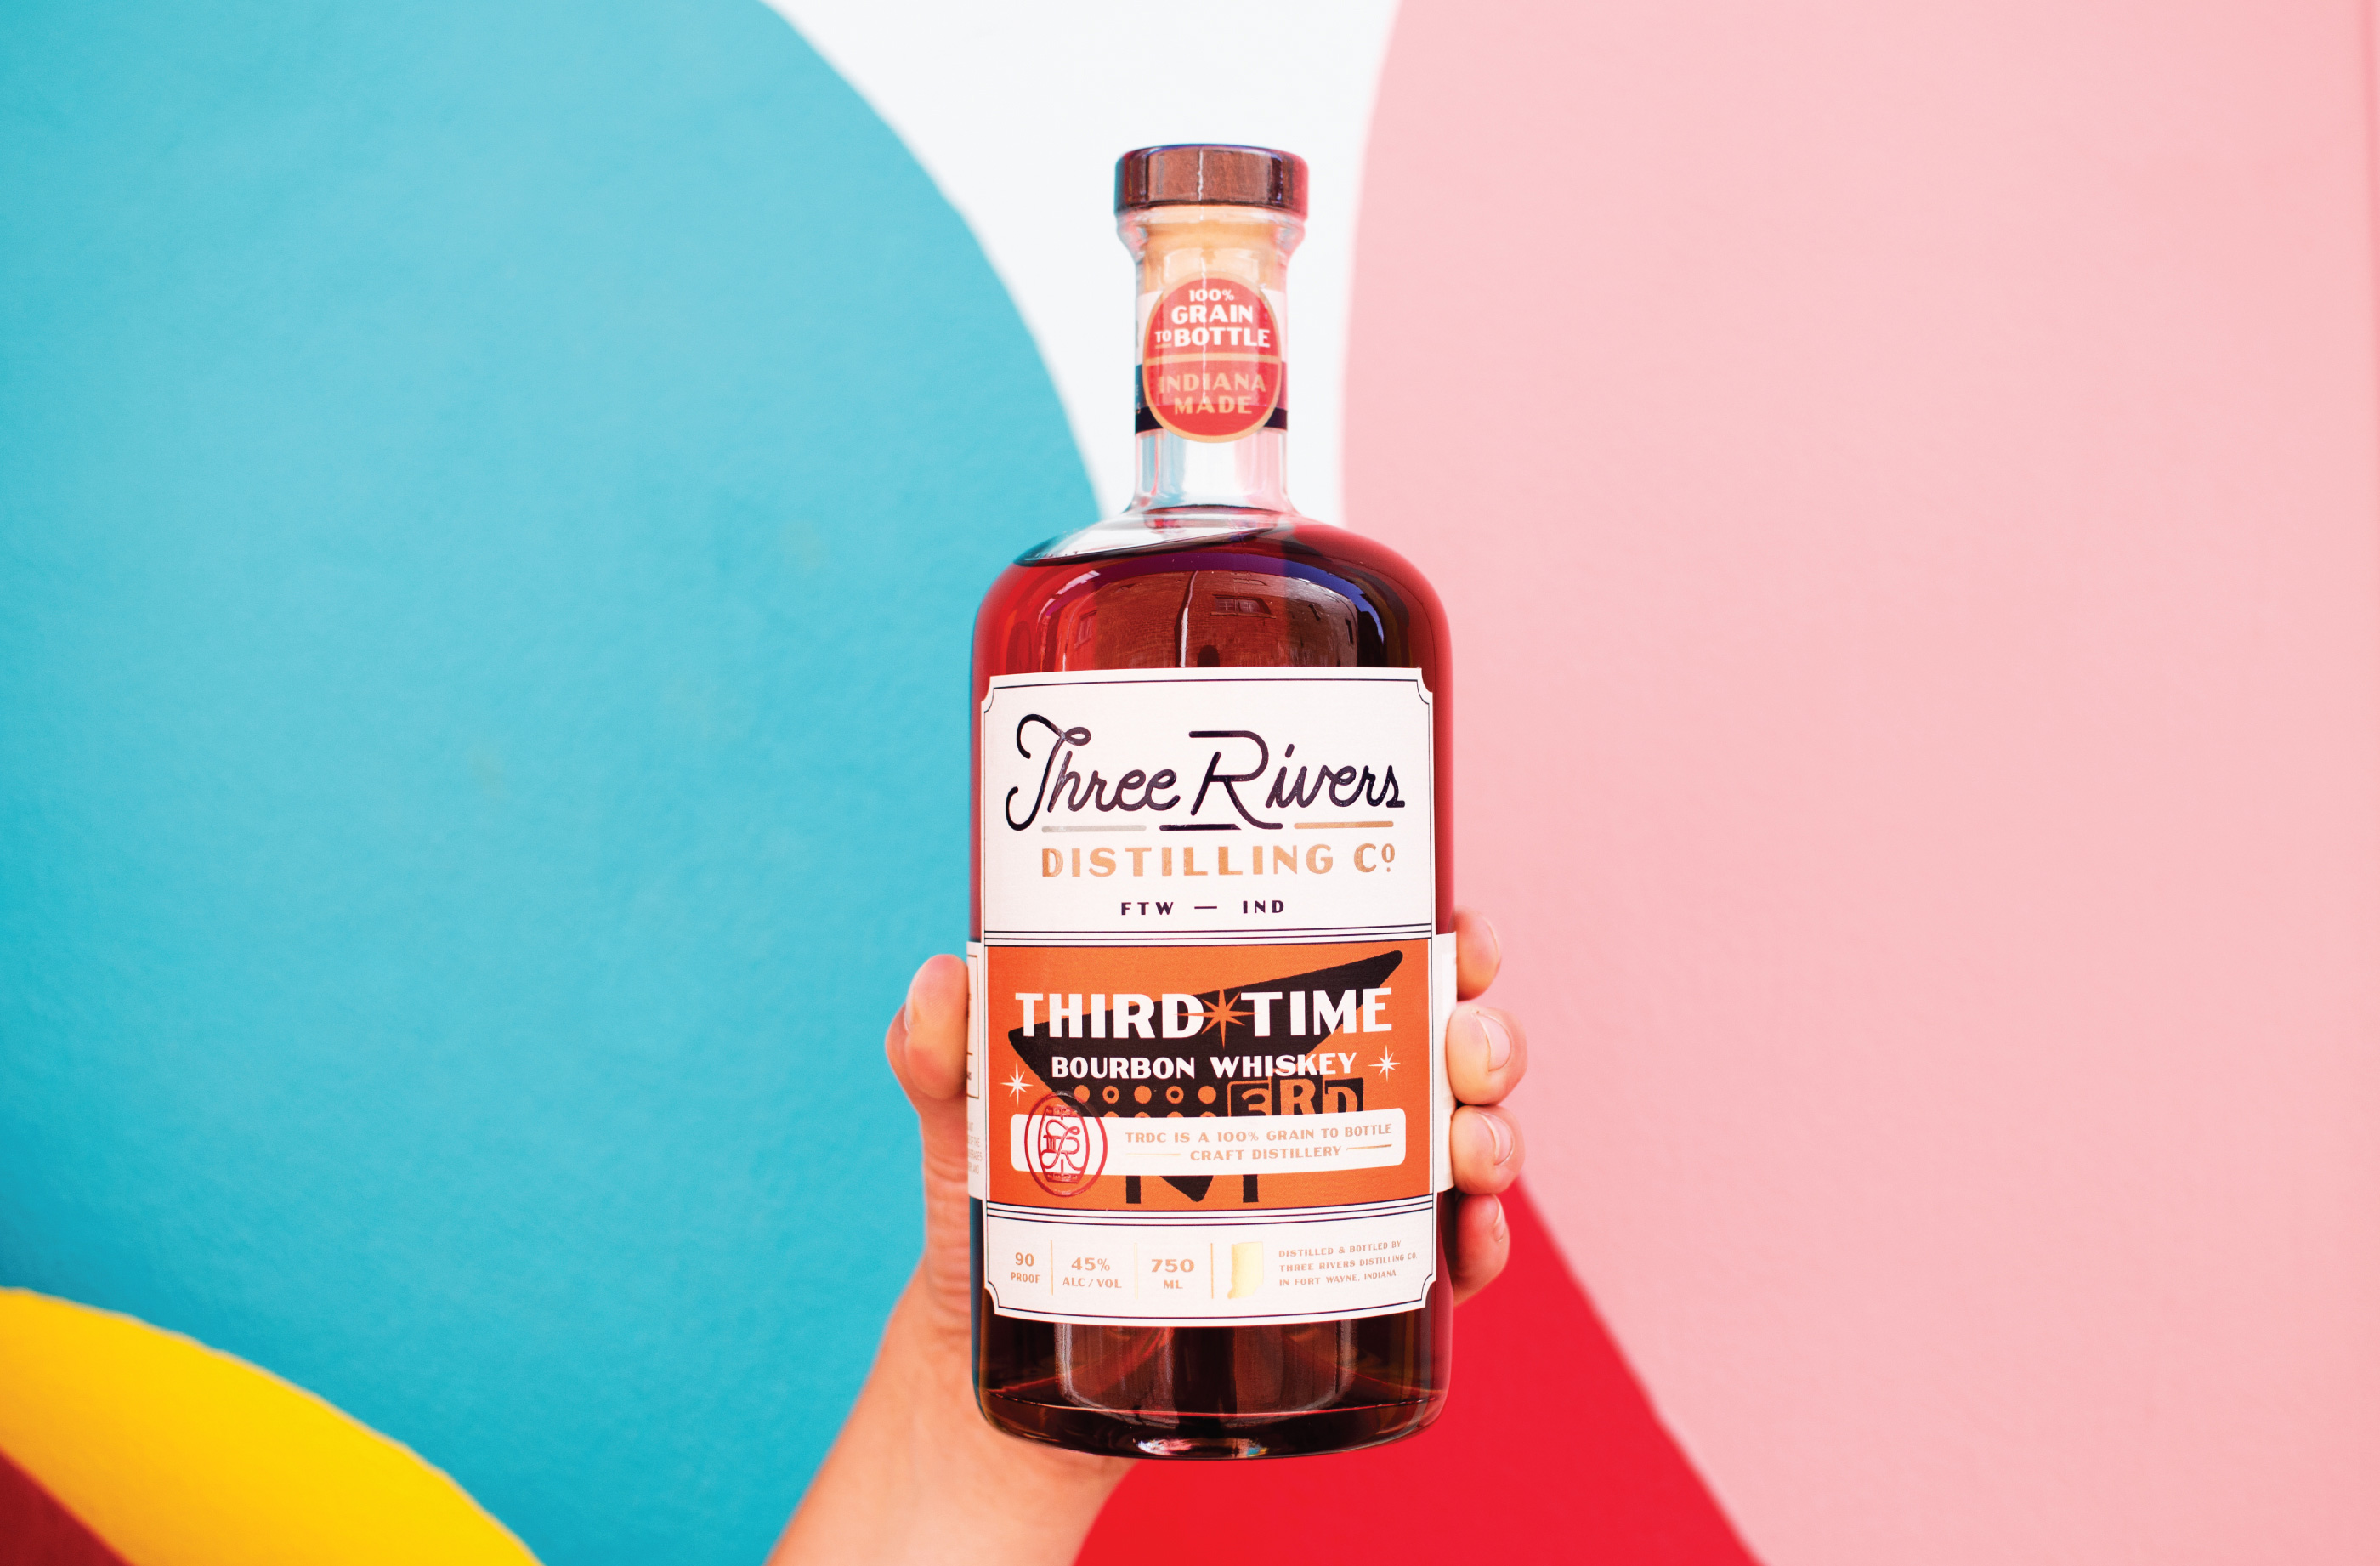 Rebranding Three Rivers Distilling Co.